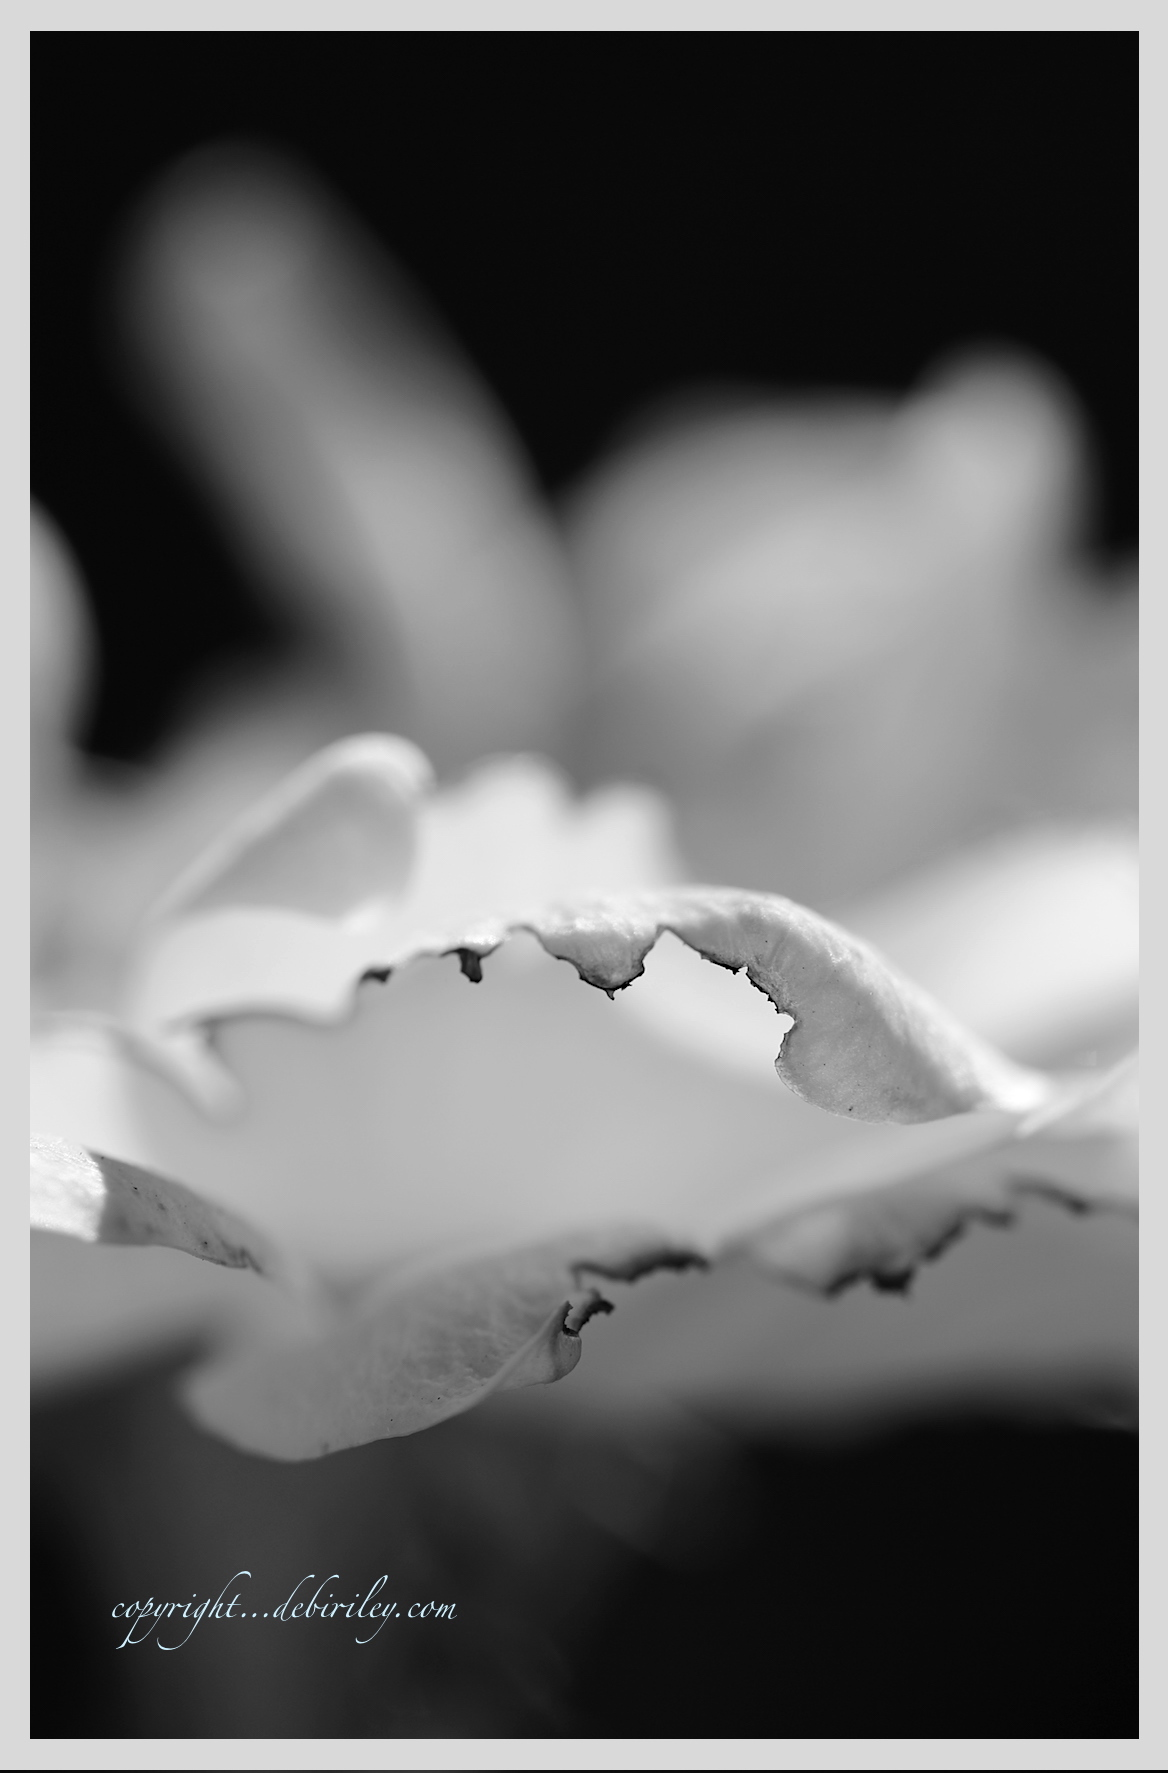 black and white flower photograph, changing the message in photography, debiriley.com